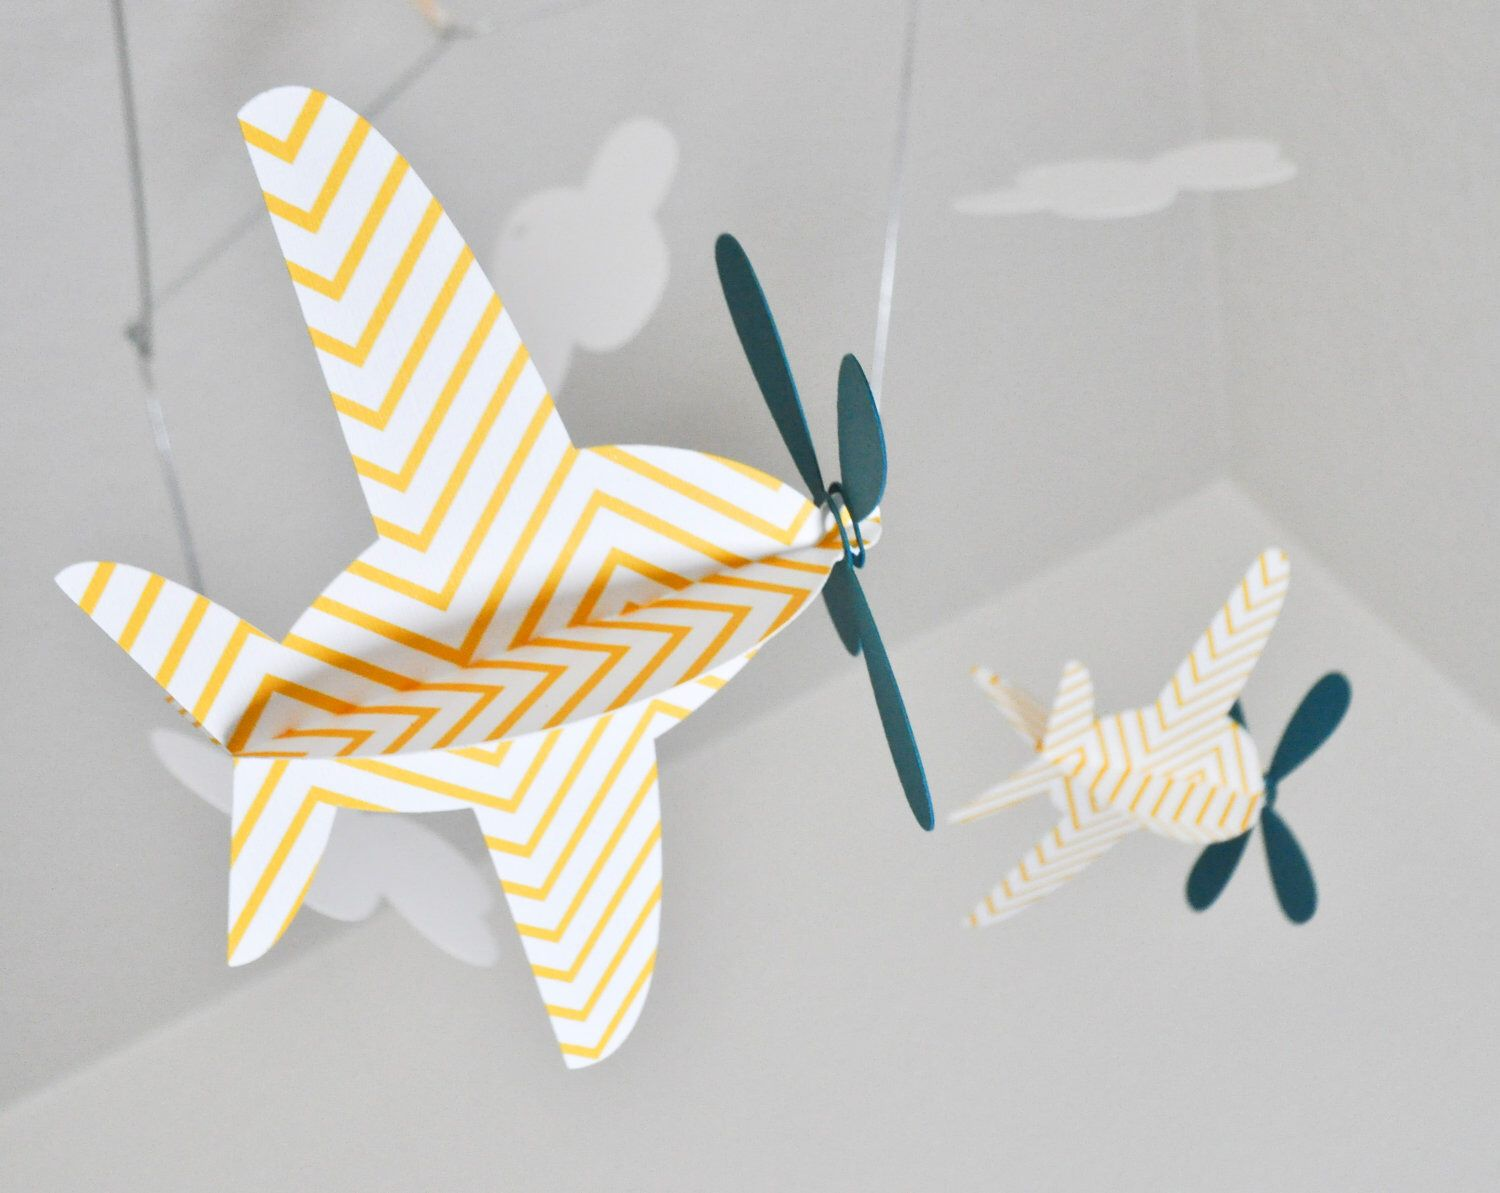 Baby Mobile, Airplanes in Yellow Chevron and  Teal by CactusAndOlive on Etsy https://www.etsy.com/listing/76951837/baby-mobile-airplanes-in-yellow-chevron